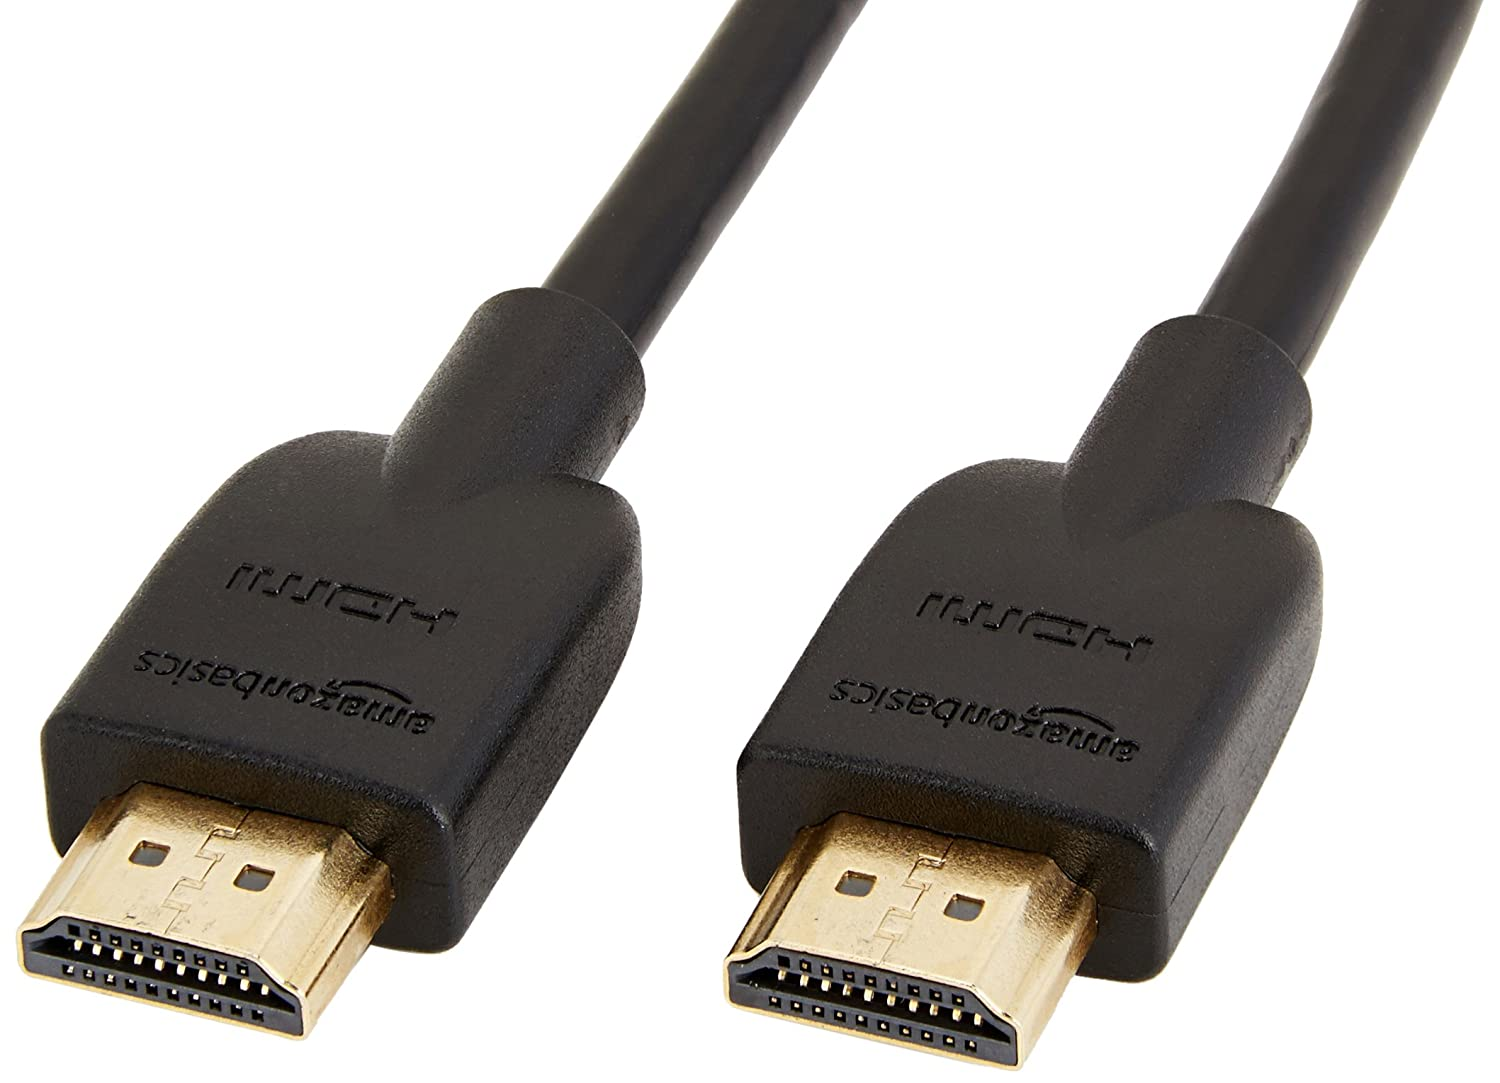 Basics CL3 Rated (In-Wall Installation) HDMI Cable - 10 Feet HL-007317